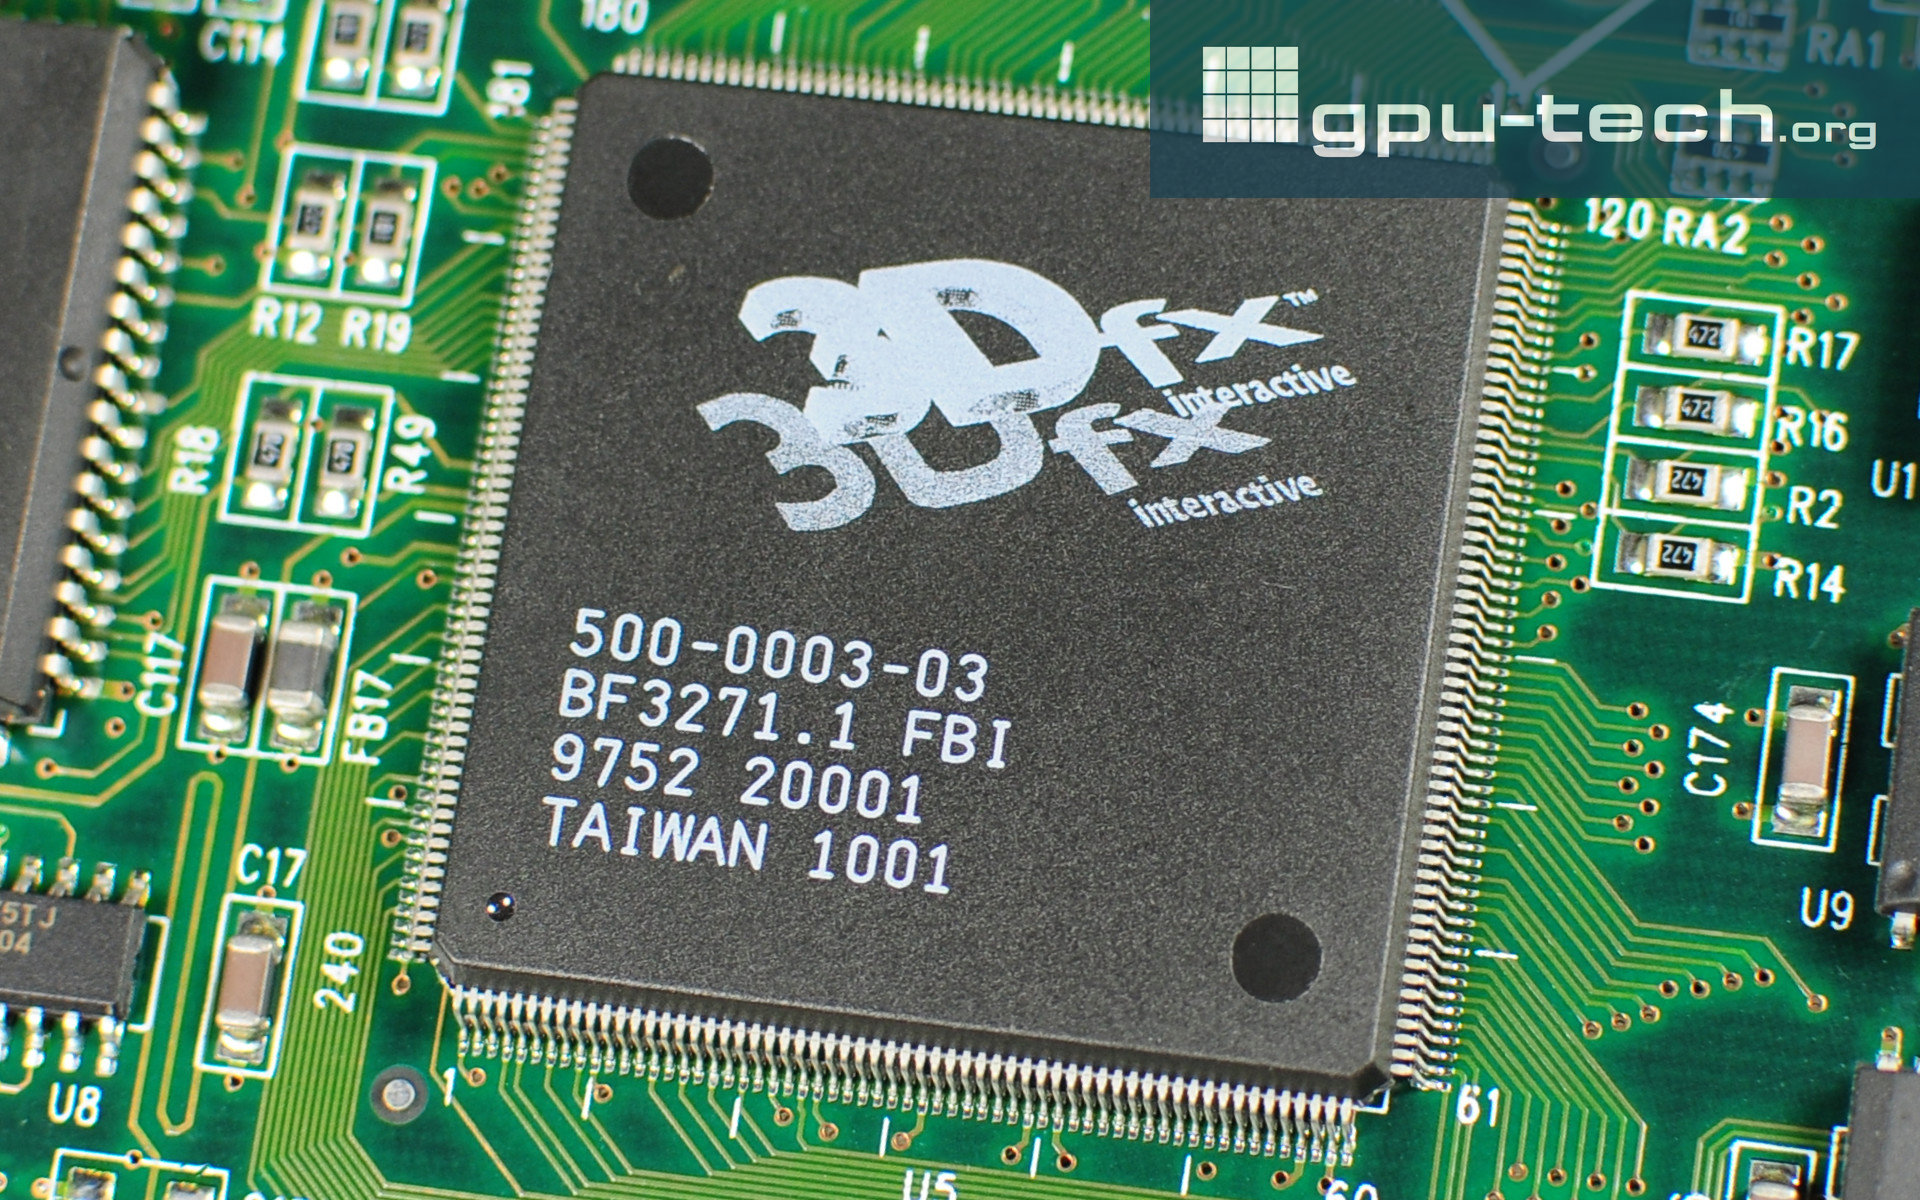 3dfx SST-1 Framebuffer Interface